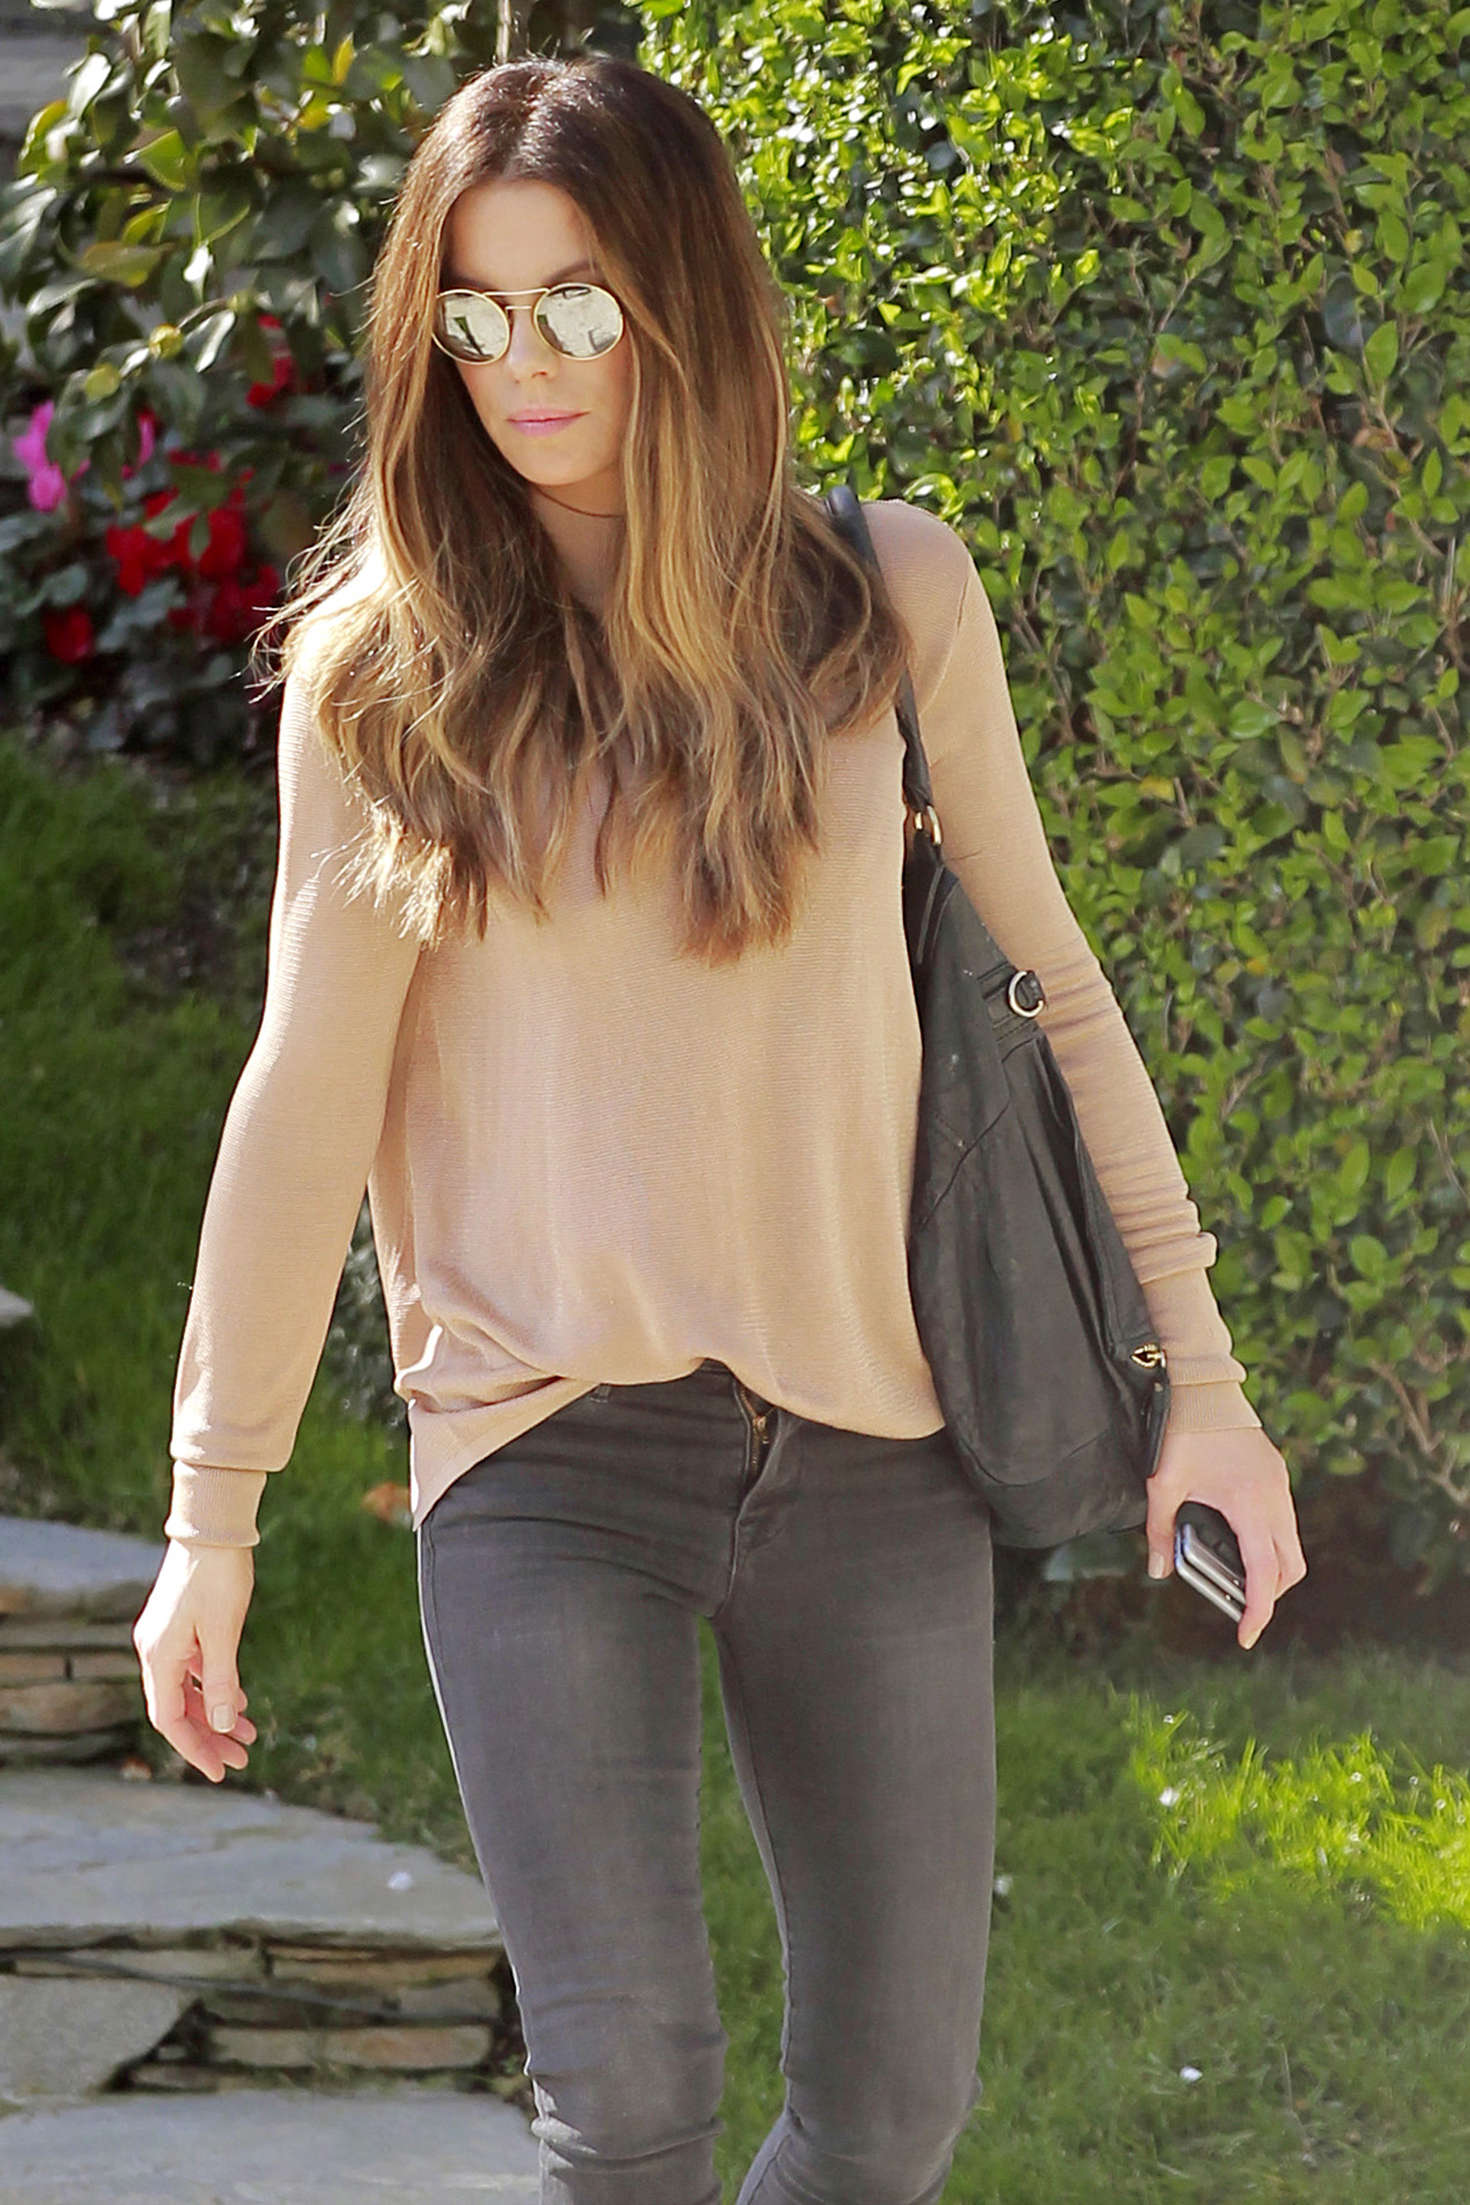 Kate Beckinsale 2016 : Kate Beckinsale in Tight Jeans -06